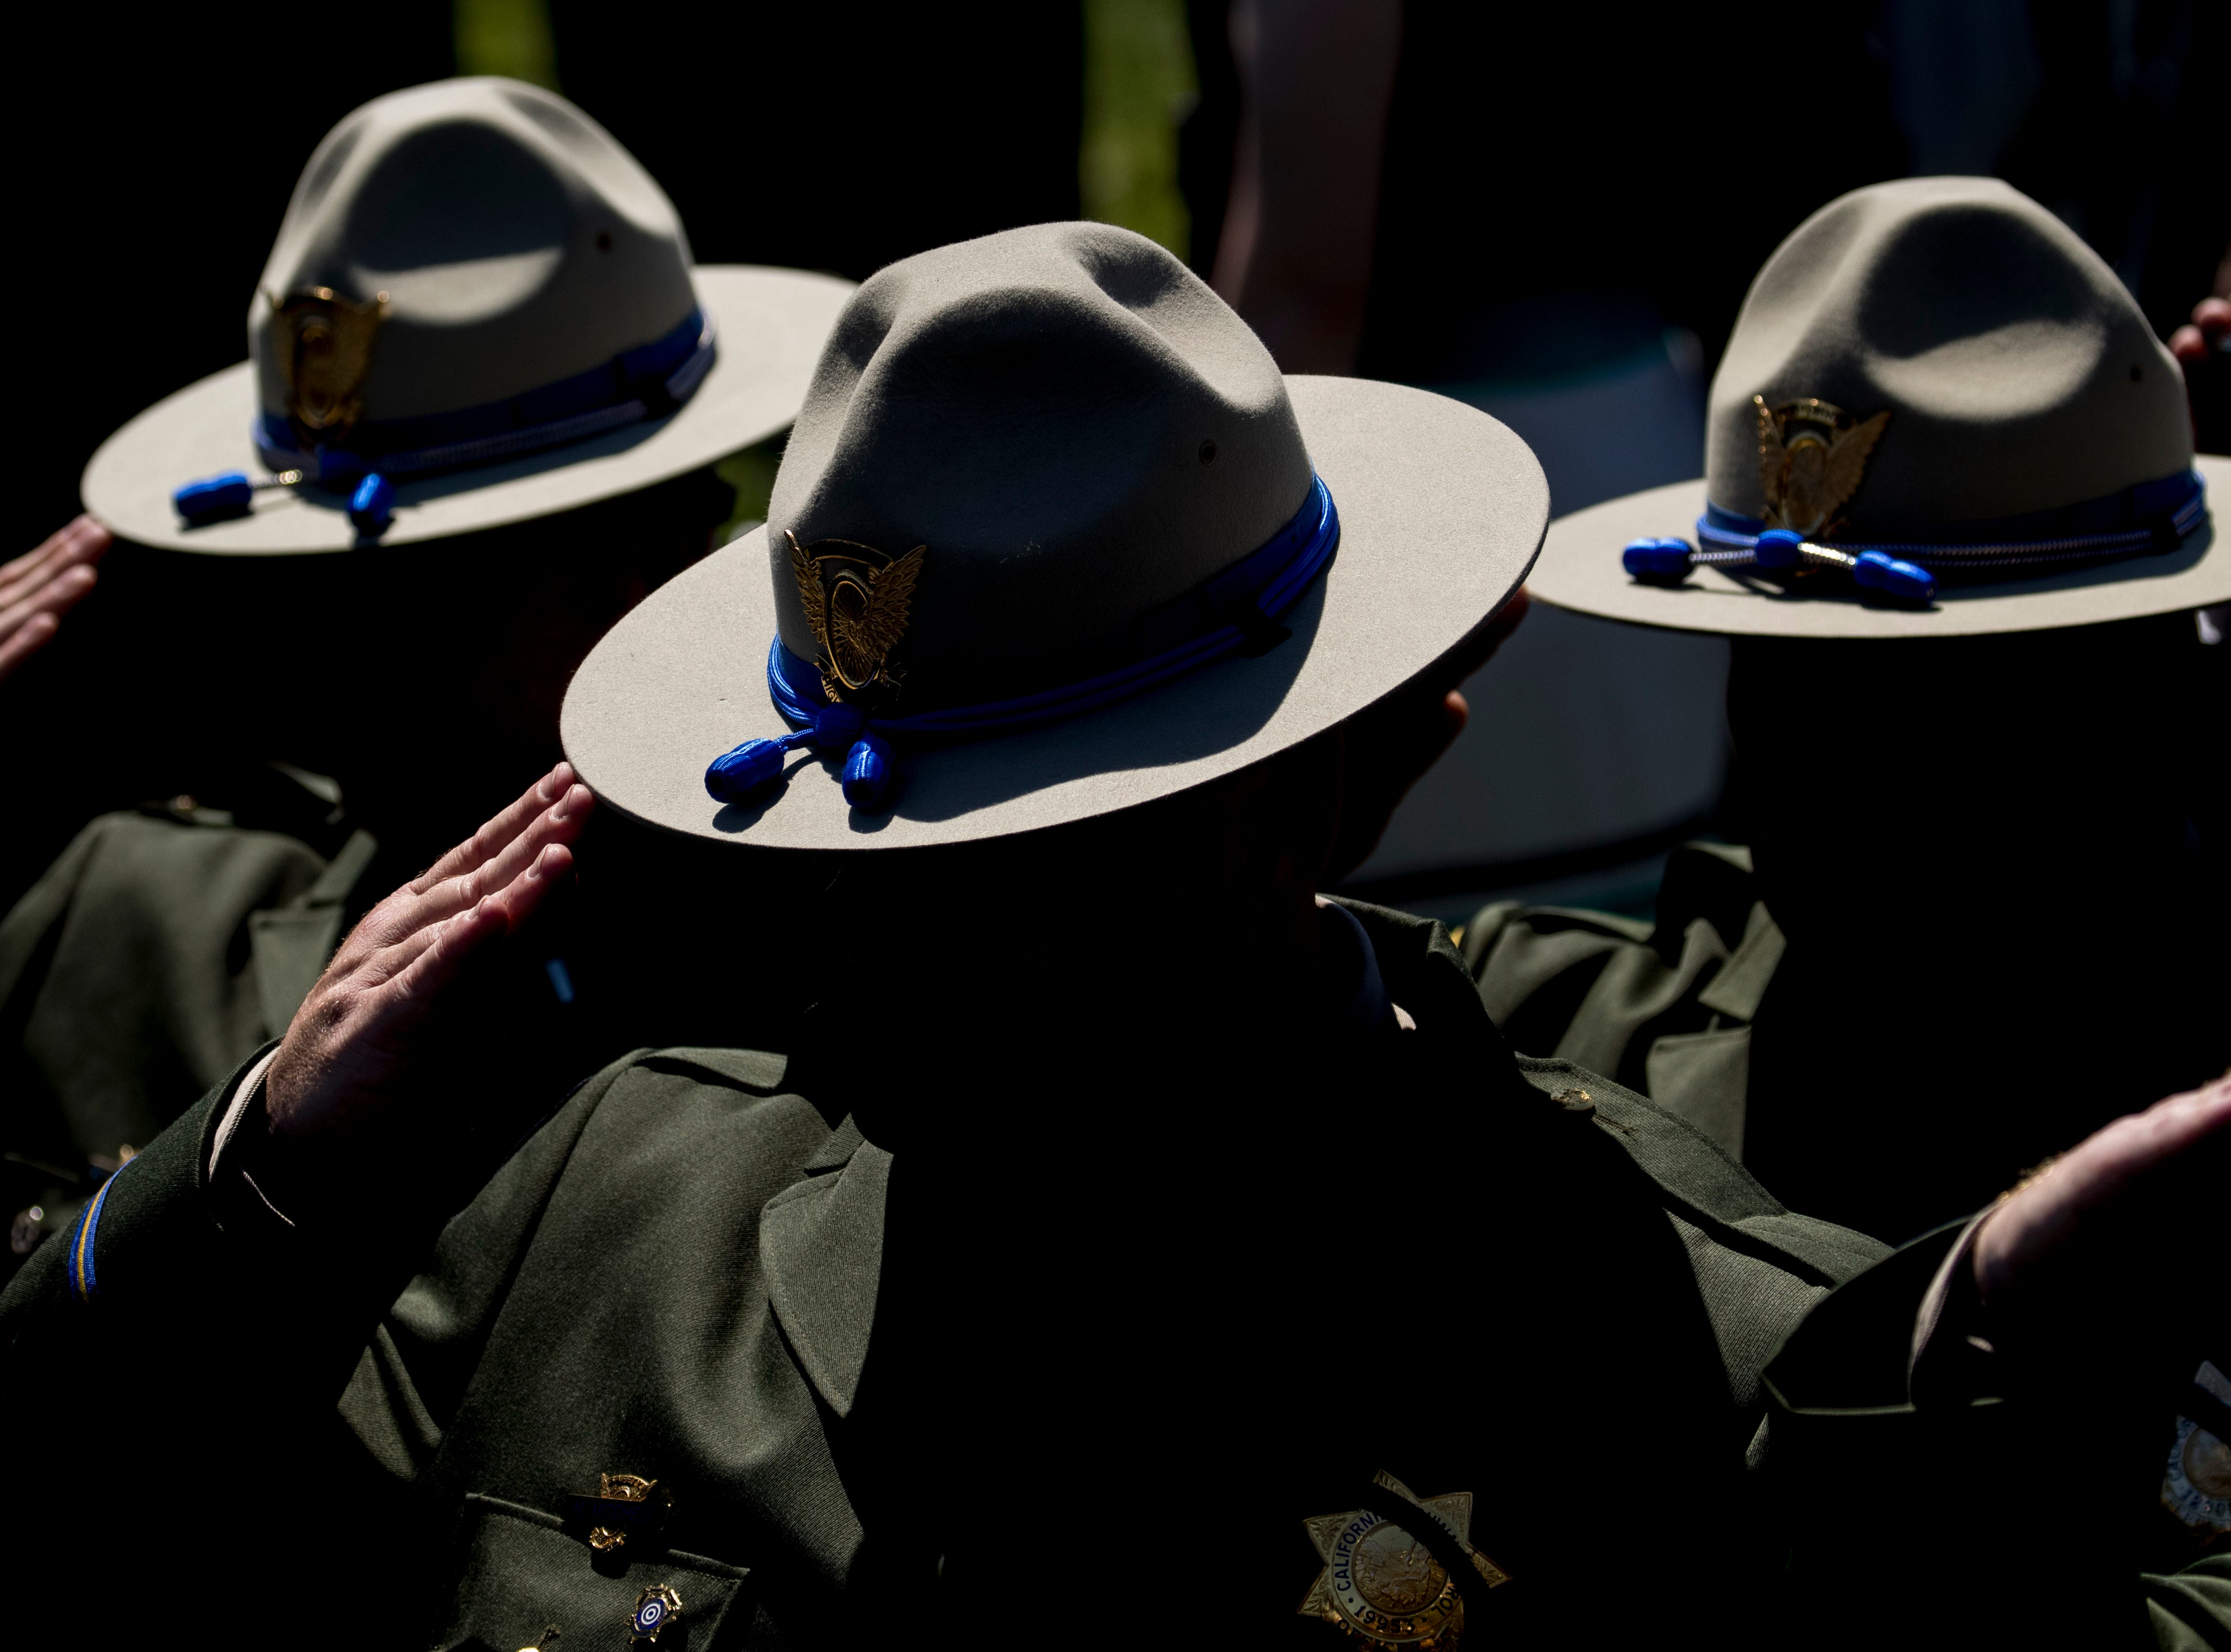 Law enforcement officers salute during the 38th Annual National Peace Officers Memorial Service on the West Lawn of the Capitol Building, Wednesday, May 15, 2019, in Washington, D.C.